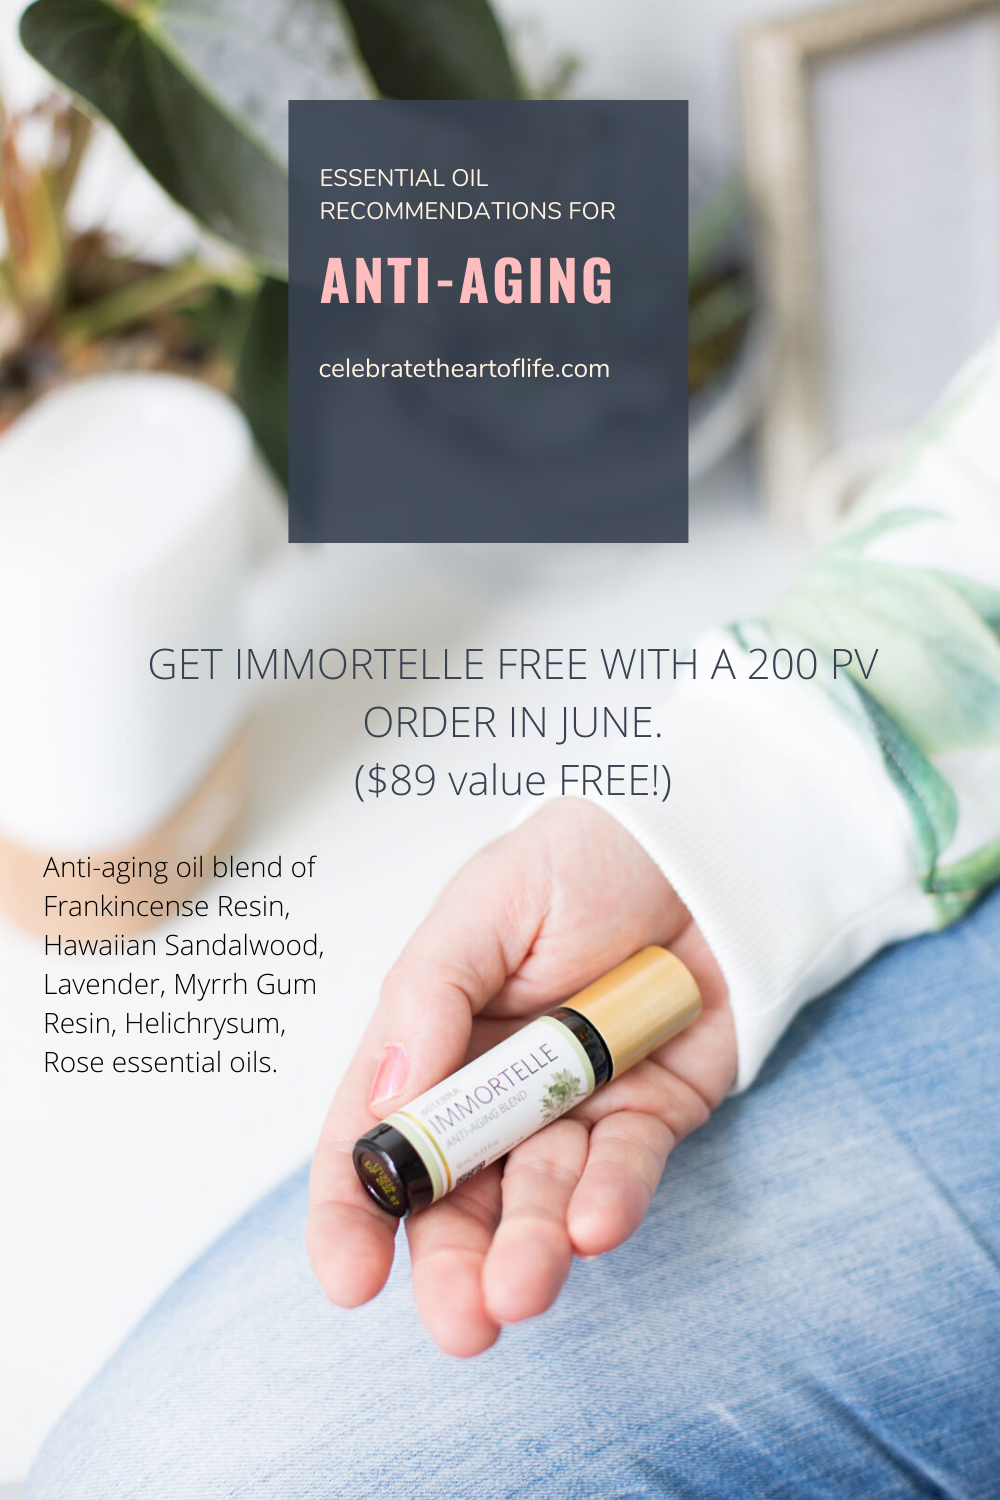 FREE doTERRA Immortelle for anti-aging